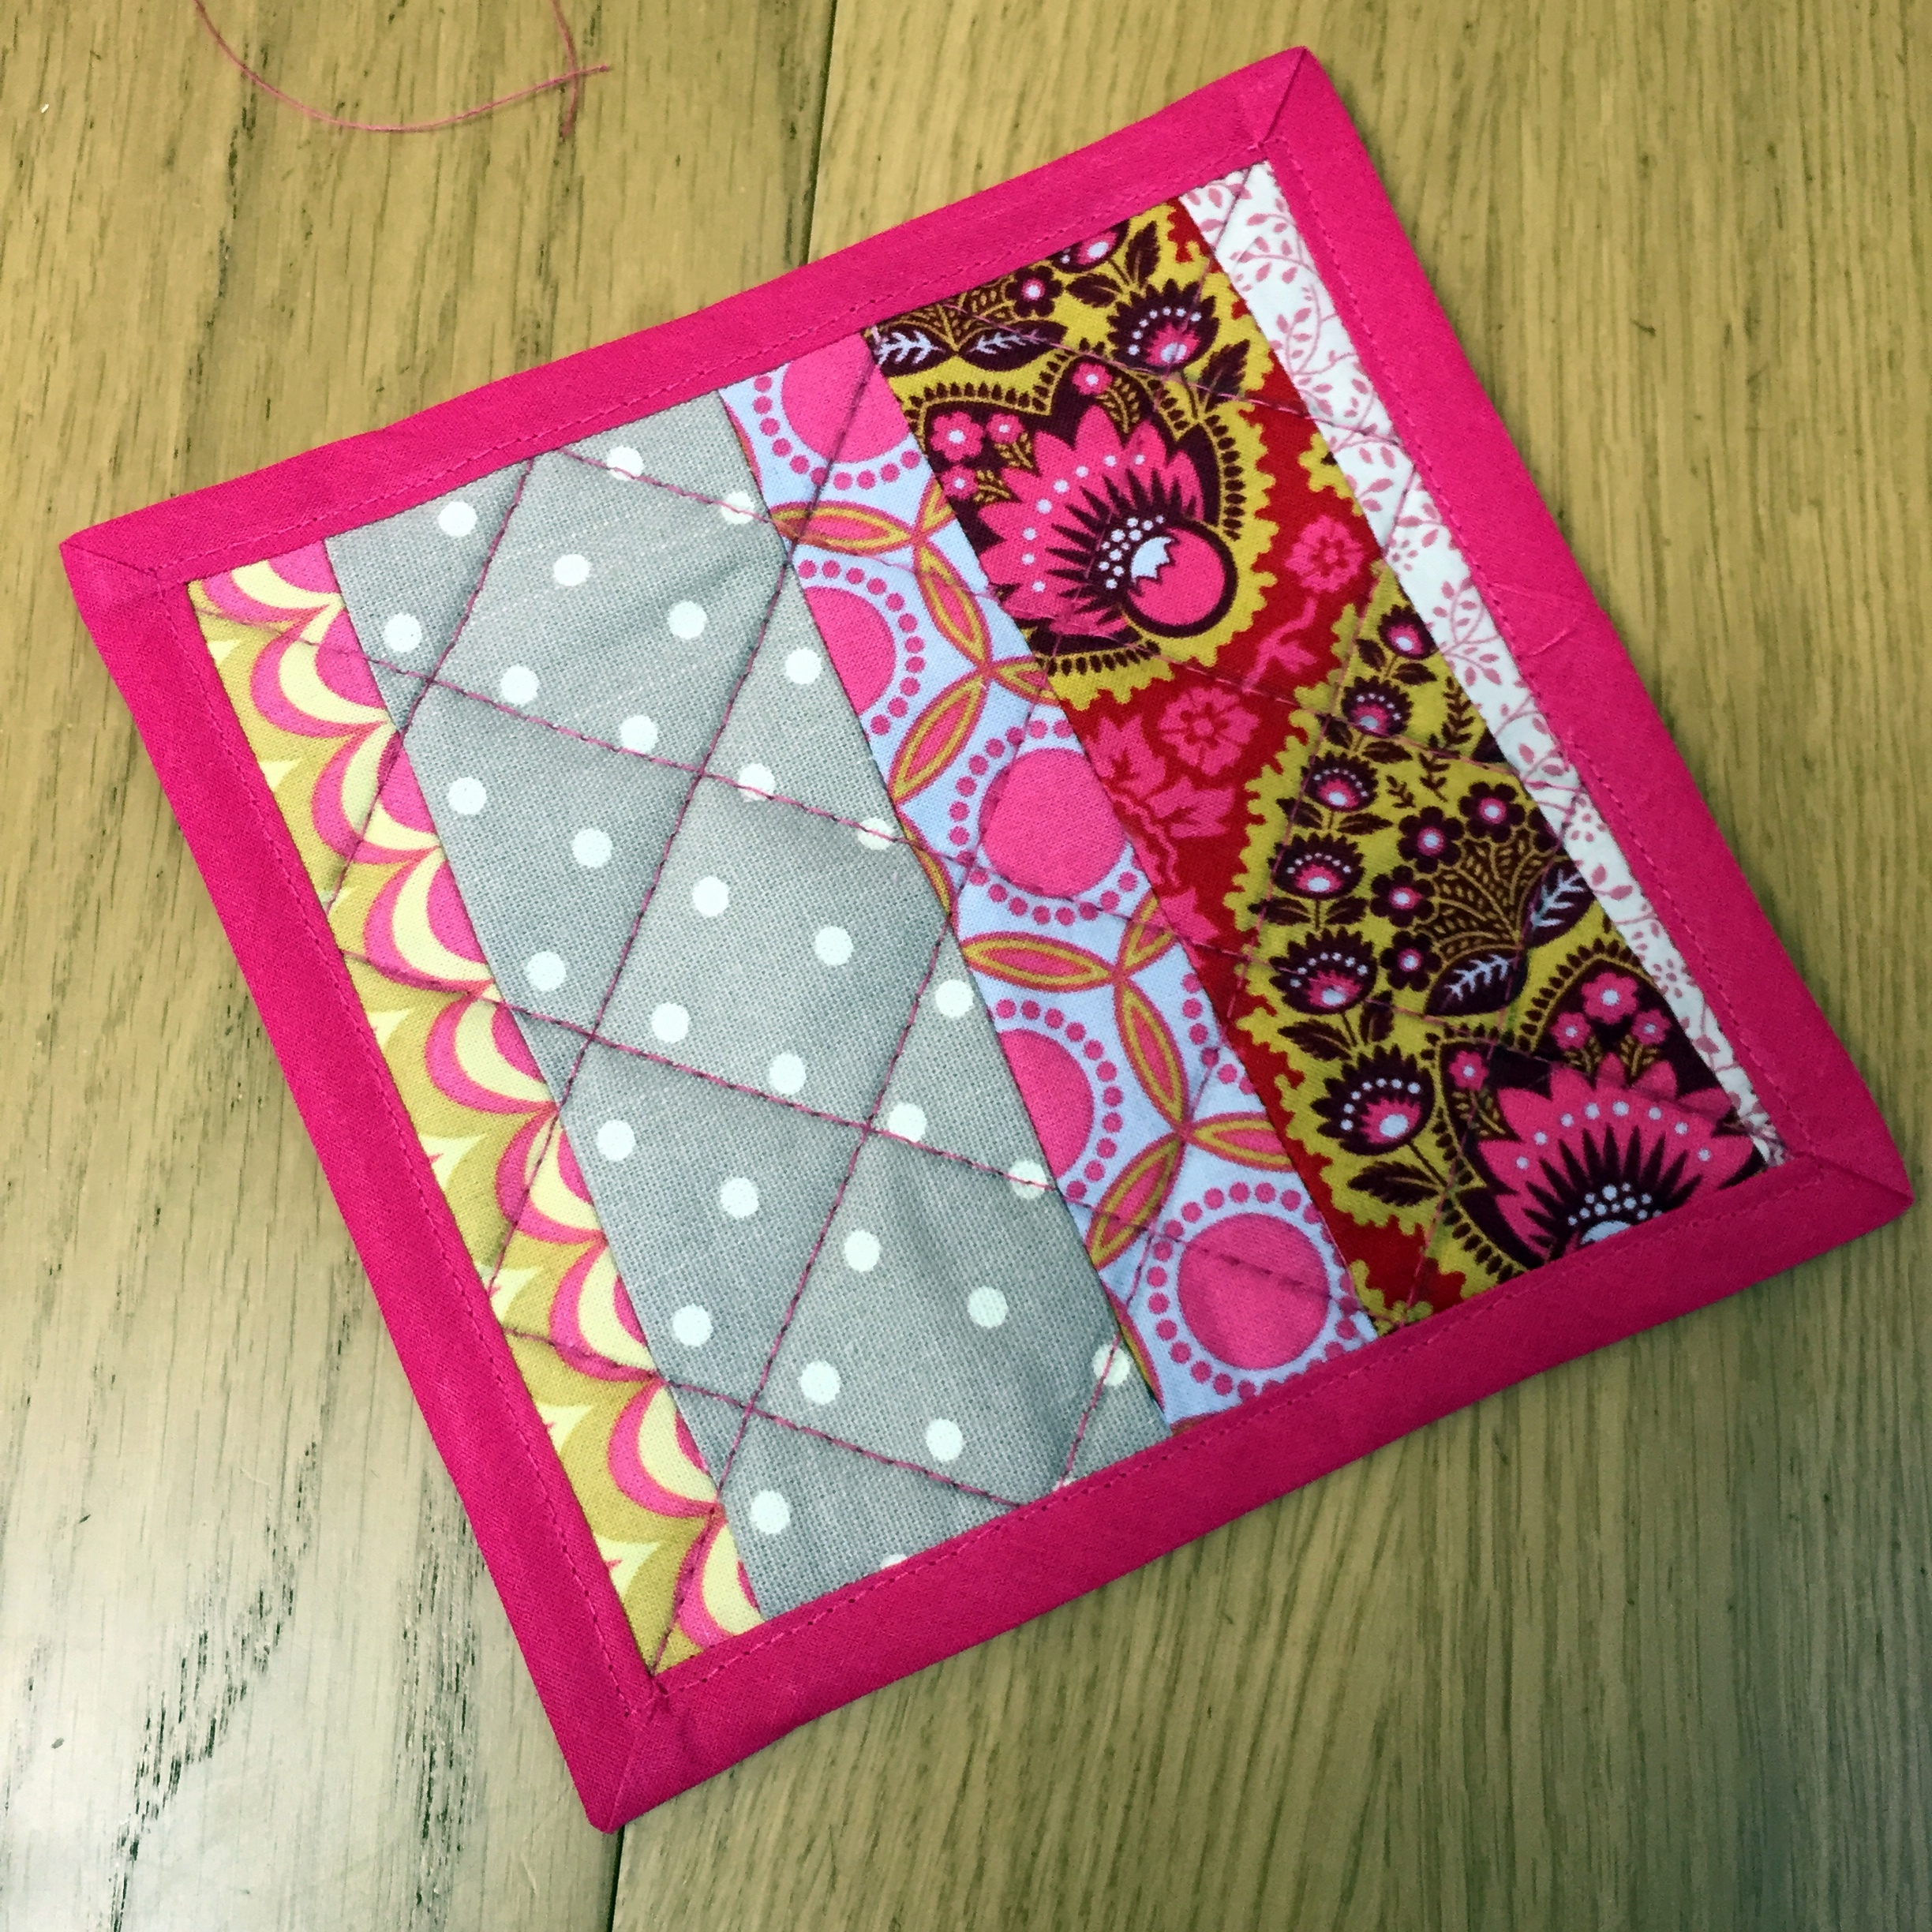 Patchwork Pot Holder - Introduction to Patchwork Quilting